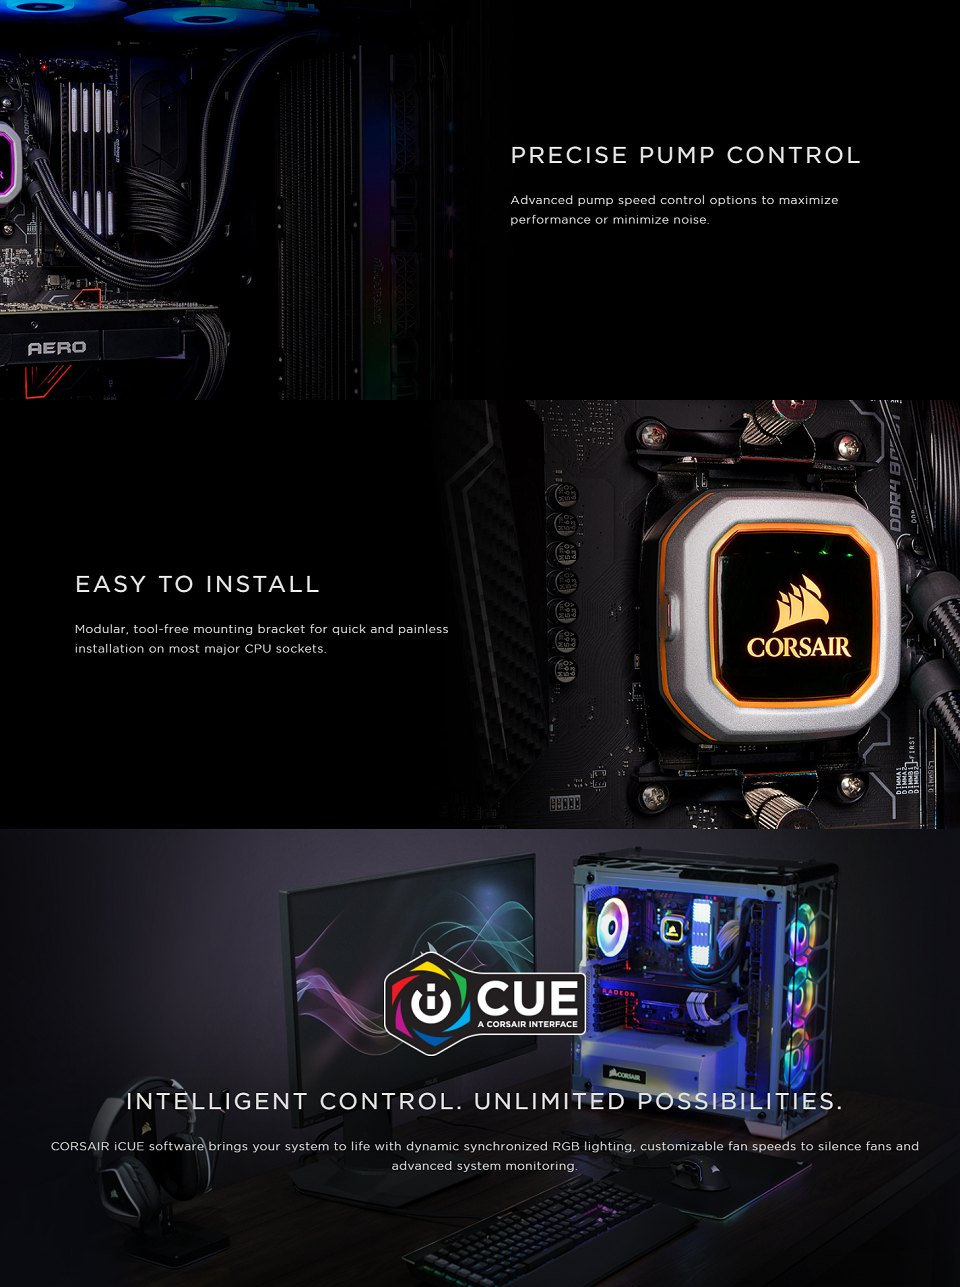 Corsair iCUE H115i RGB Pro XT 280mm AIO CPU Cooler features 4